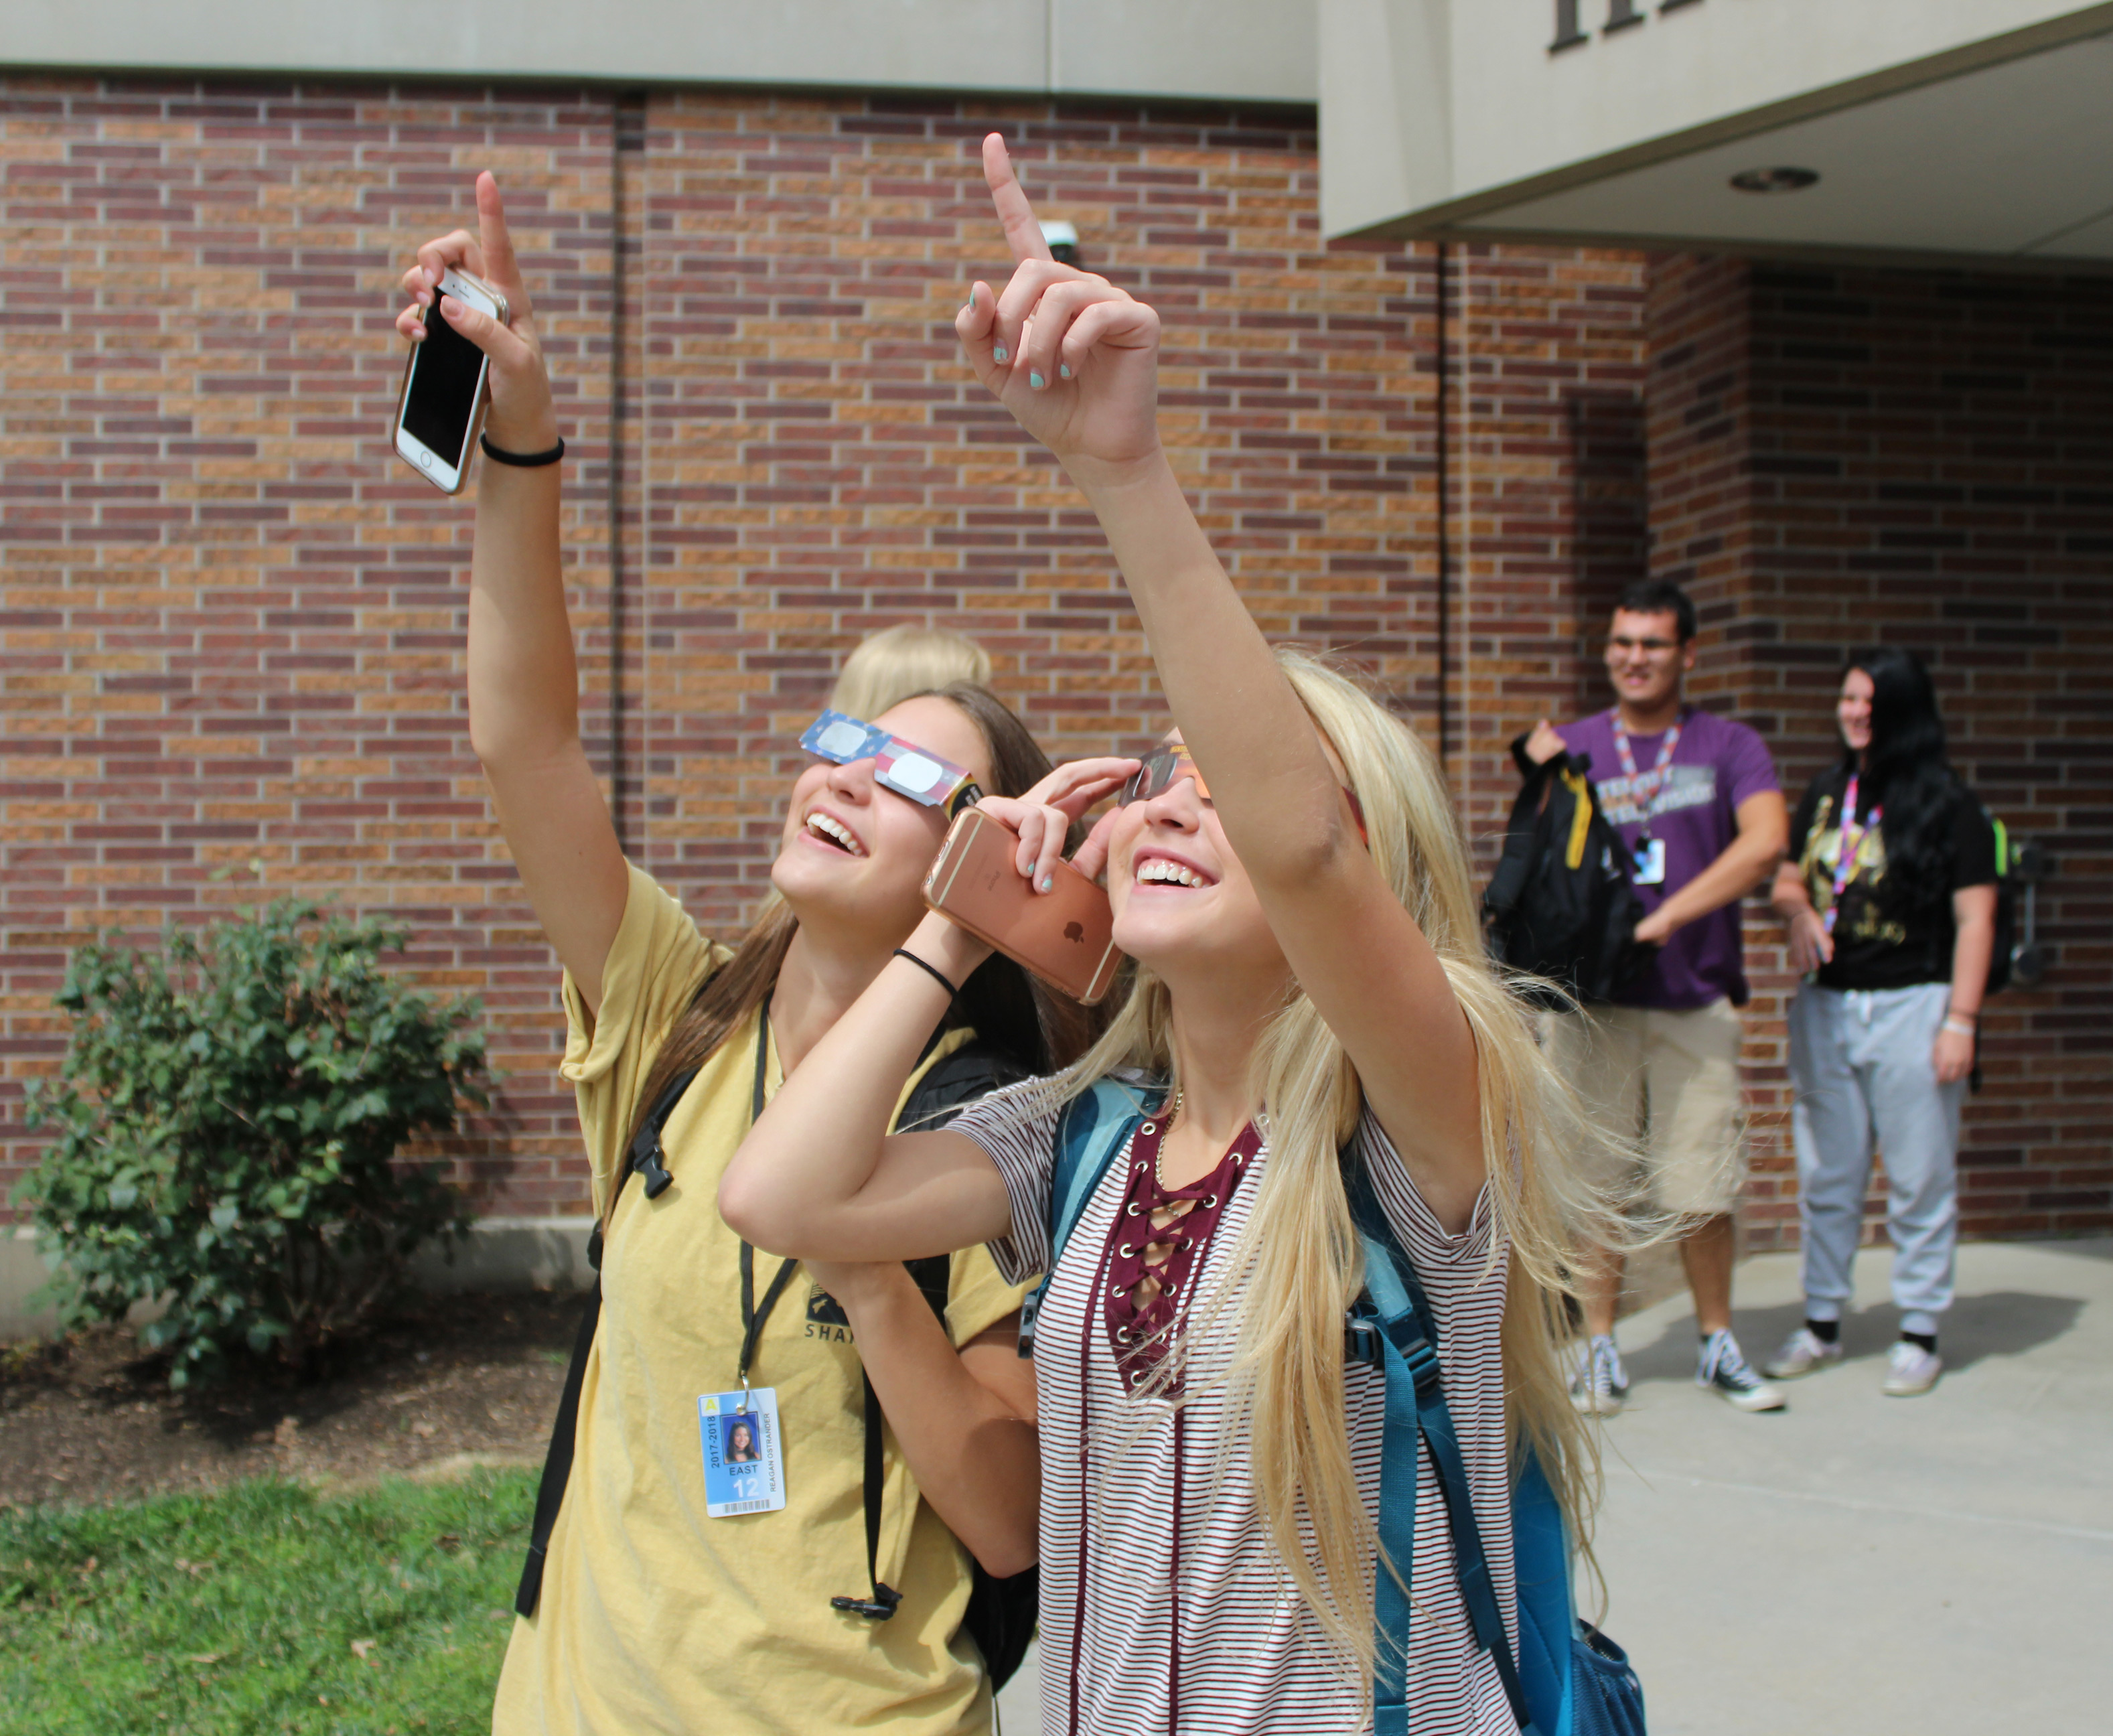 Two East high senior watch in awe at the start of the eclipse on Monday August 21. All LPS schools took a break to watch the memorable event. Photo by Nick Rippe